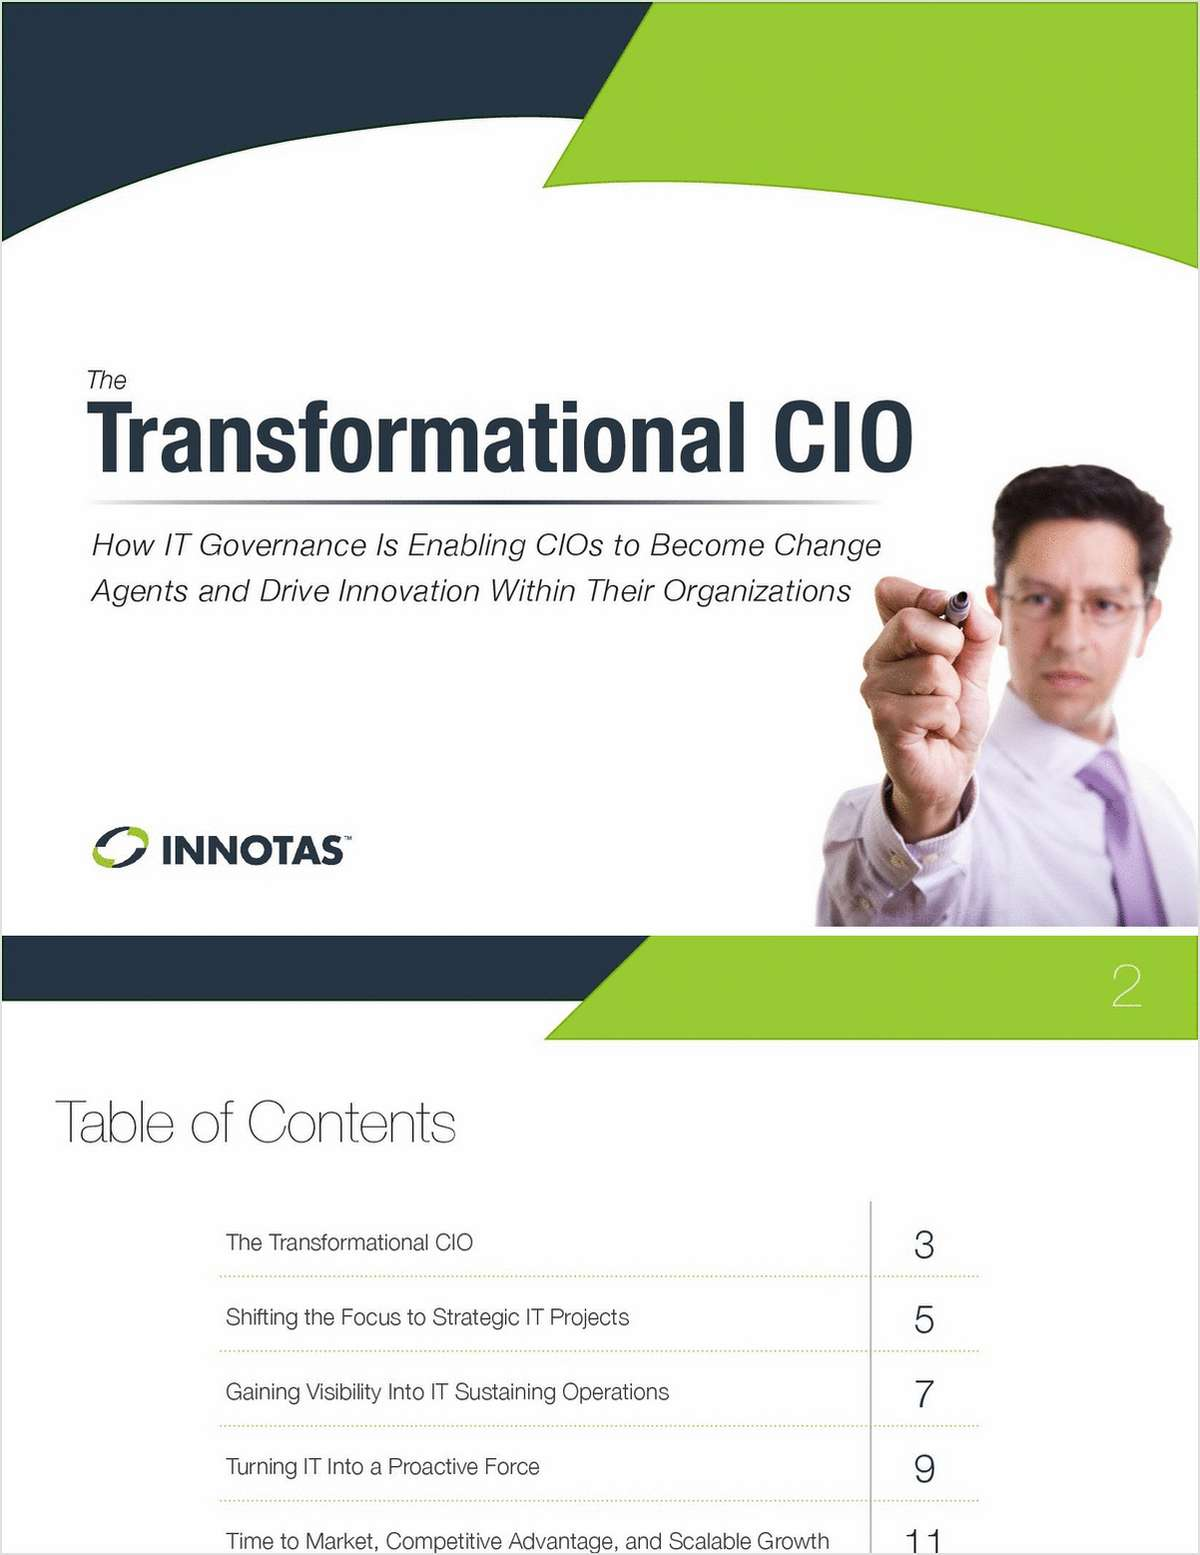 Transformational CIO - Change Agents & Innovator